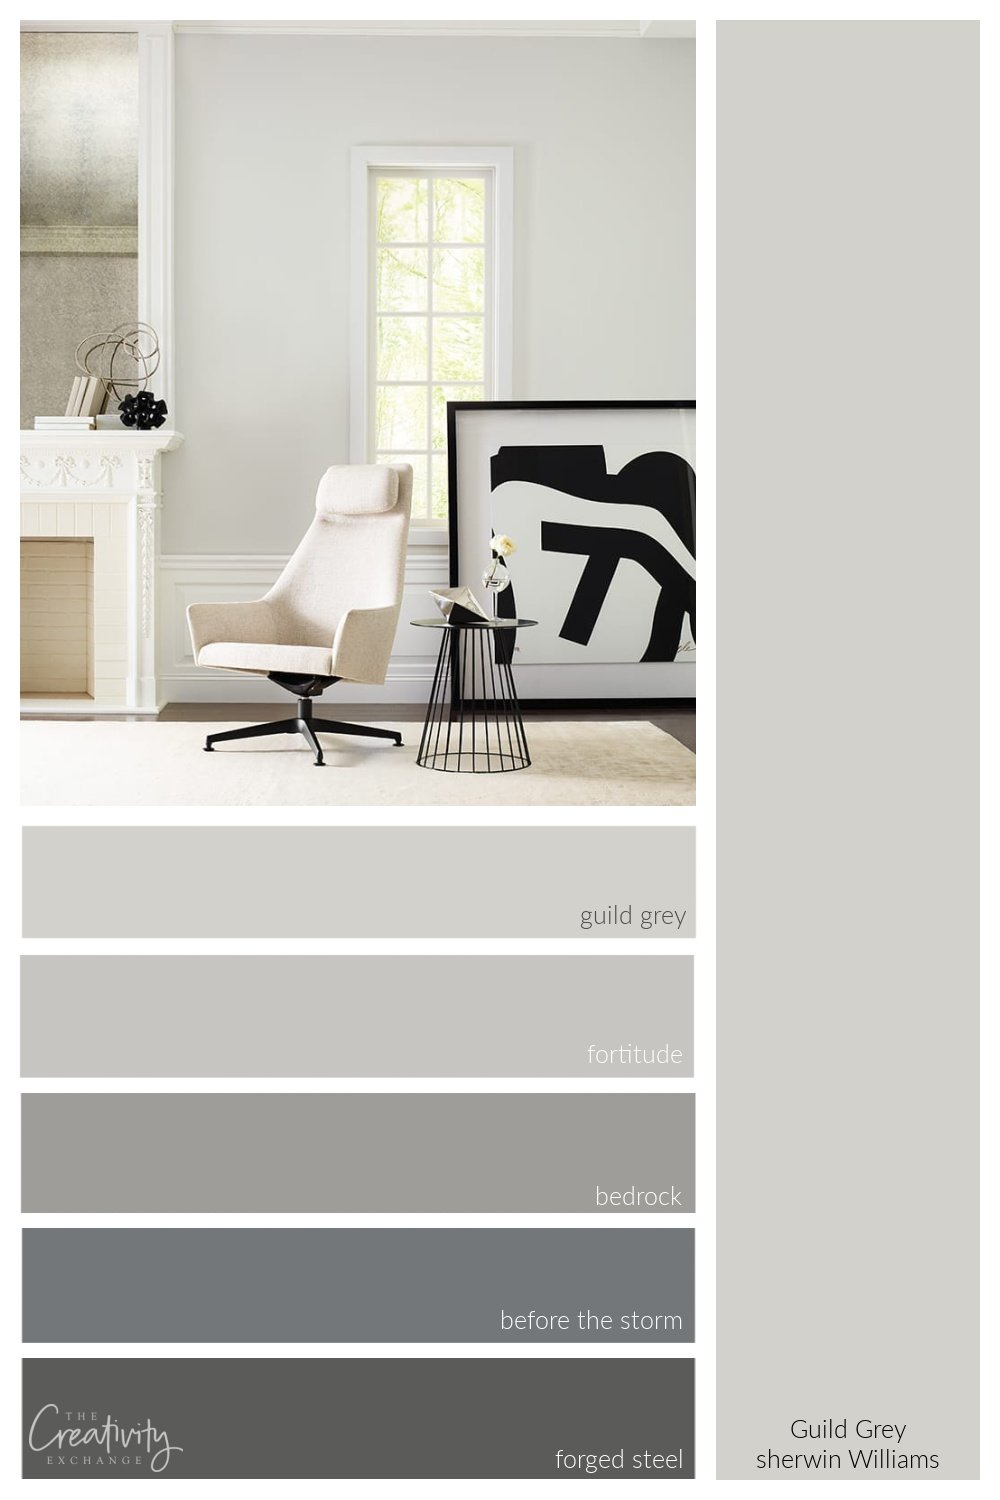 Sherwin Williams Guild Grey with color strip